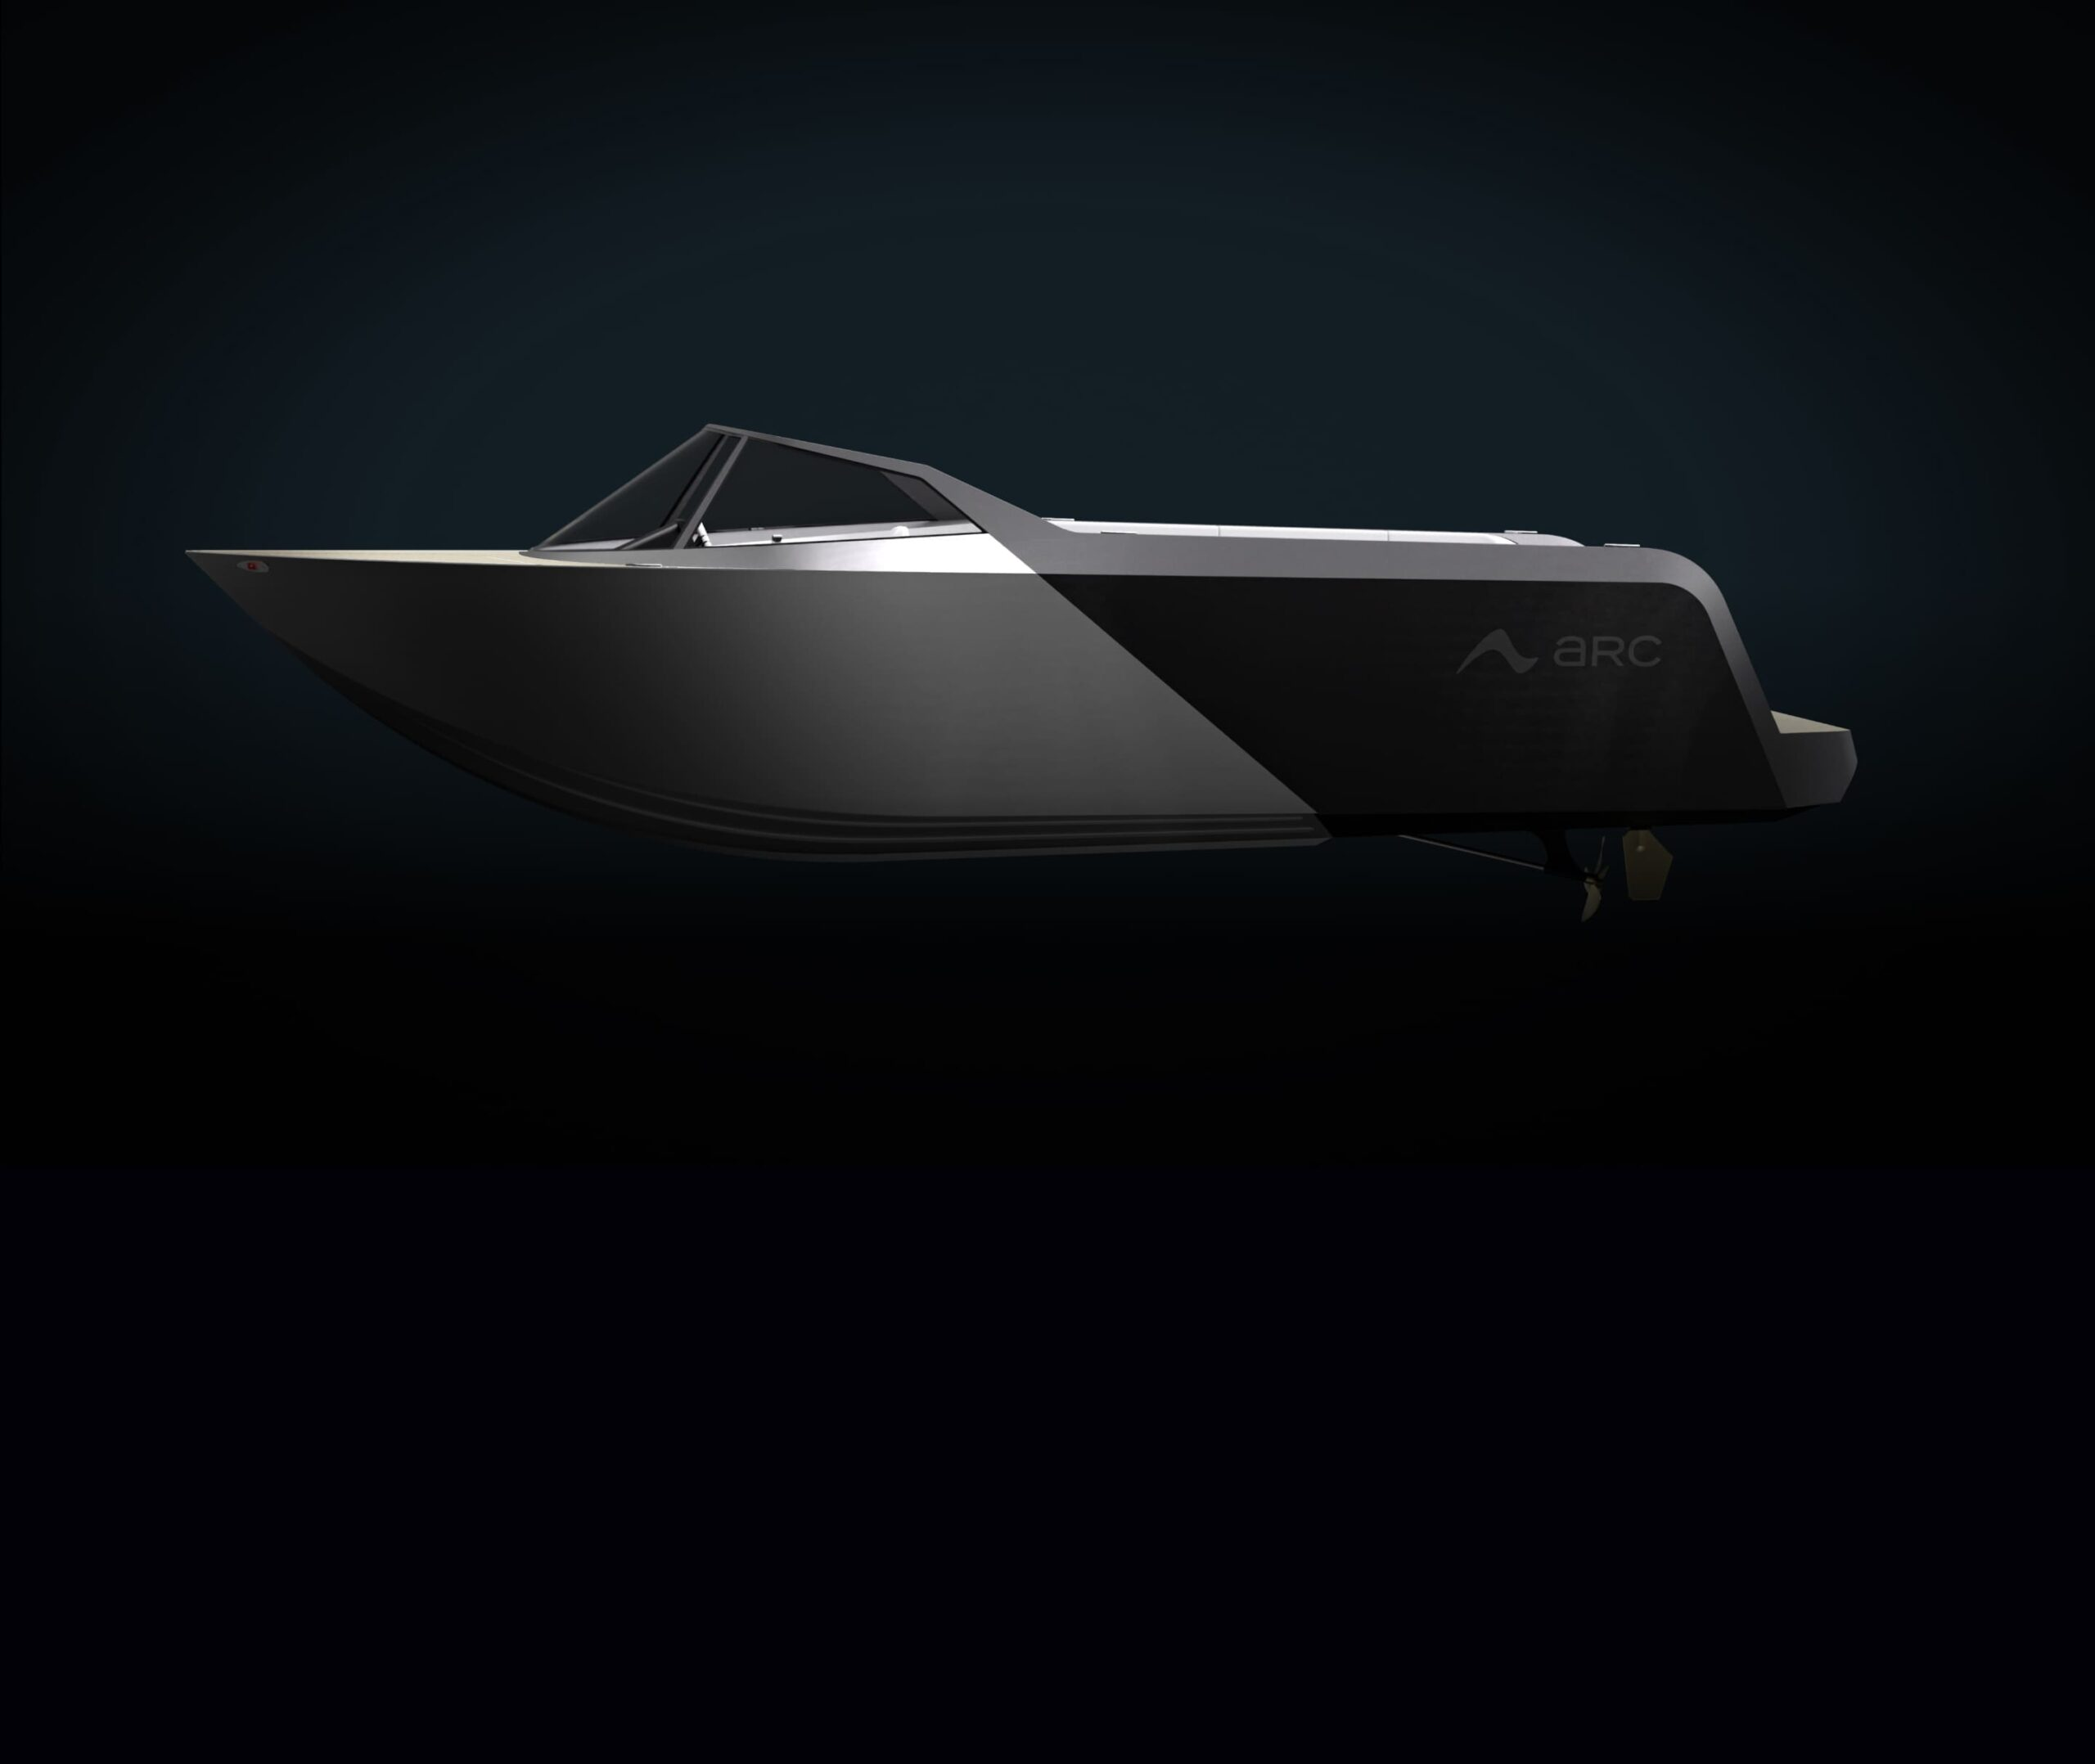 arc one electric boat